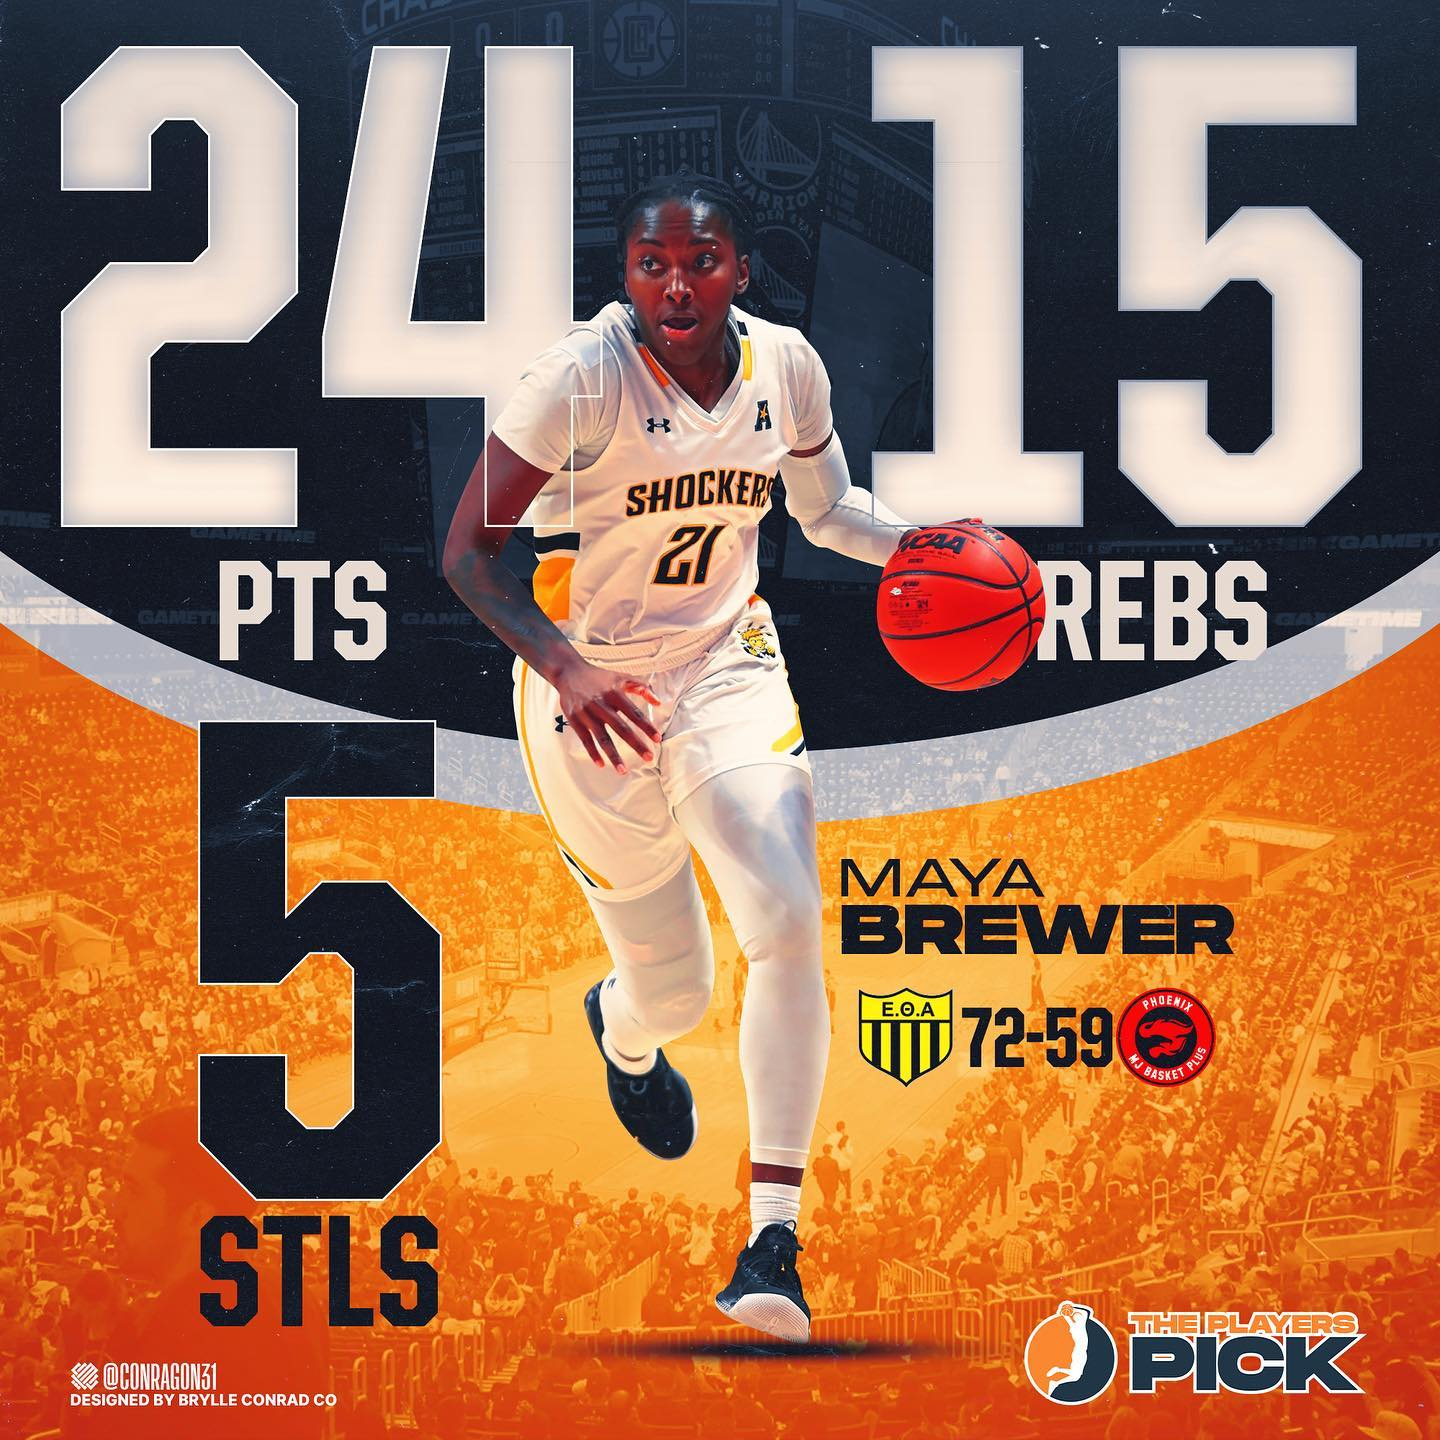 Huge double double for Brewer with 24 points & 15 rebounds!